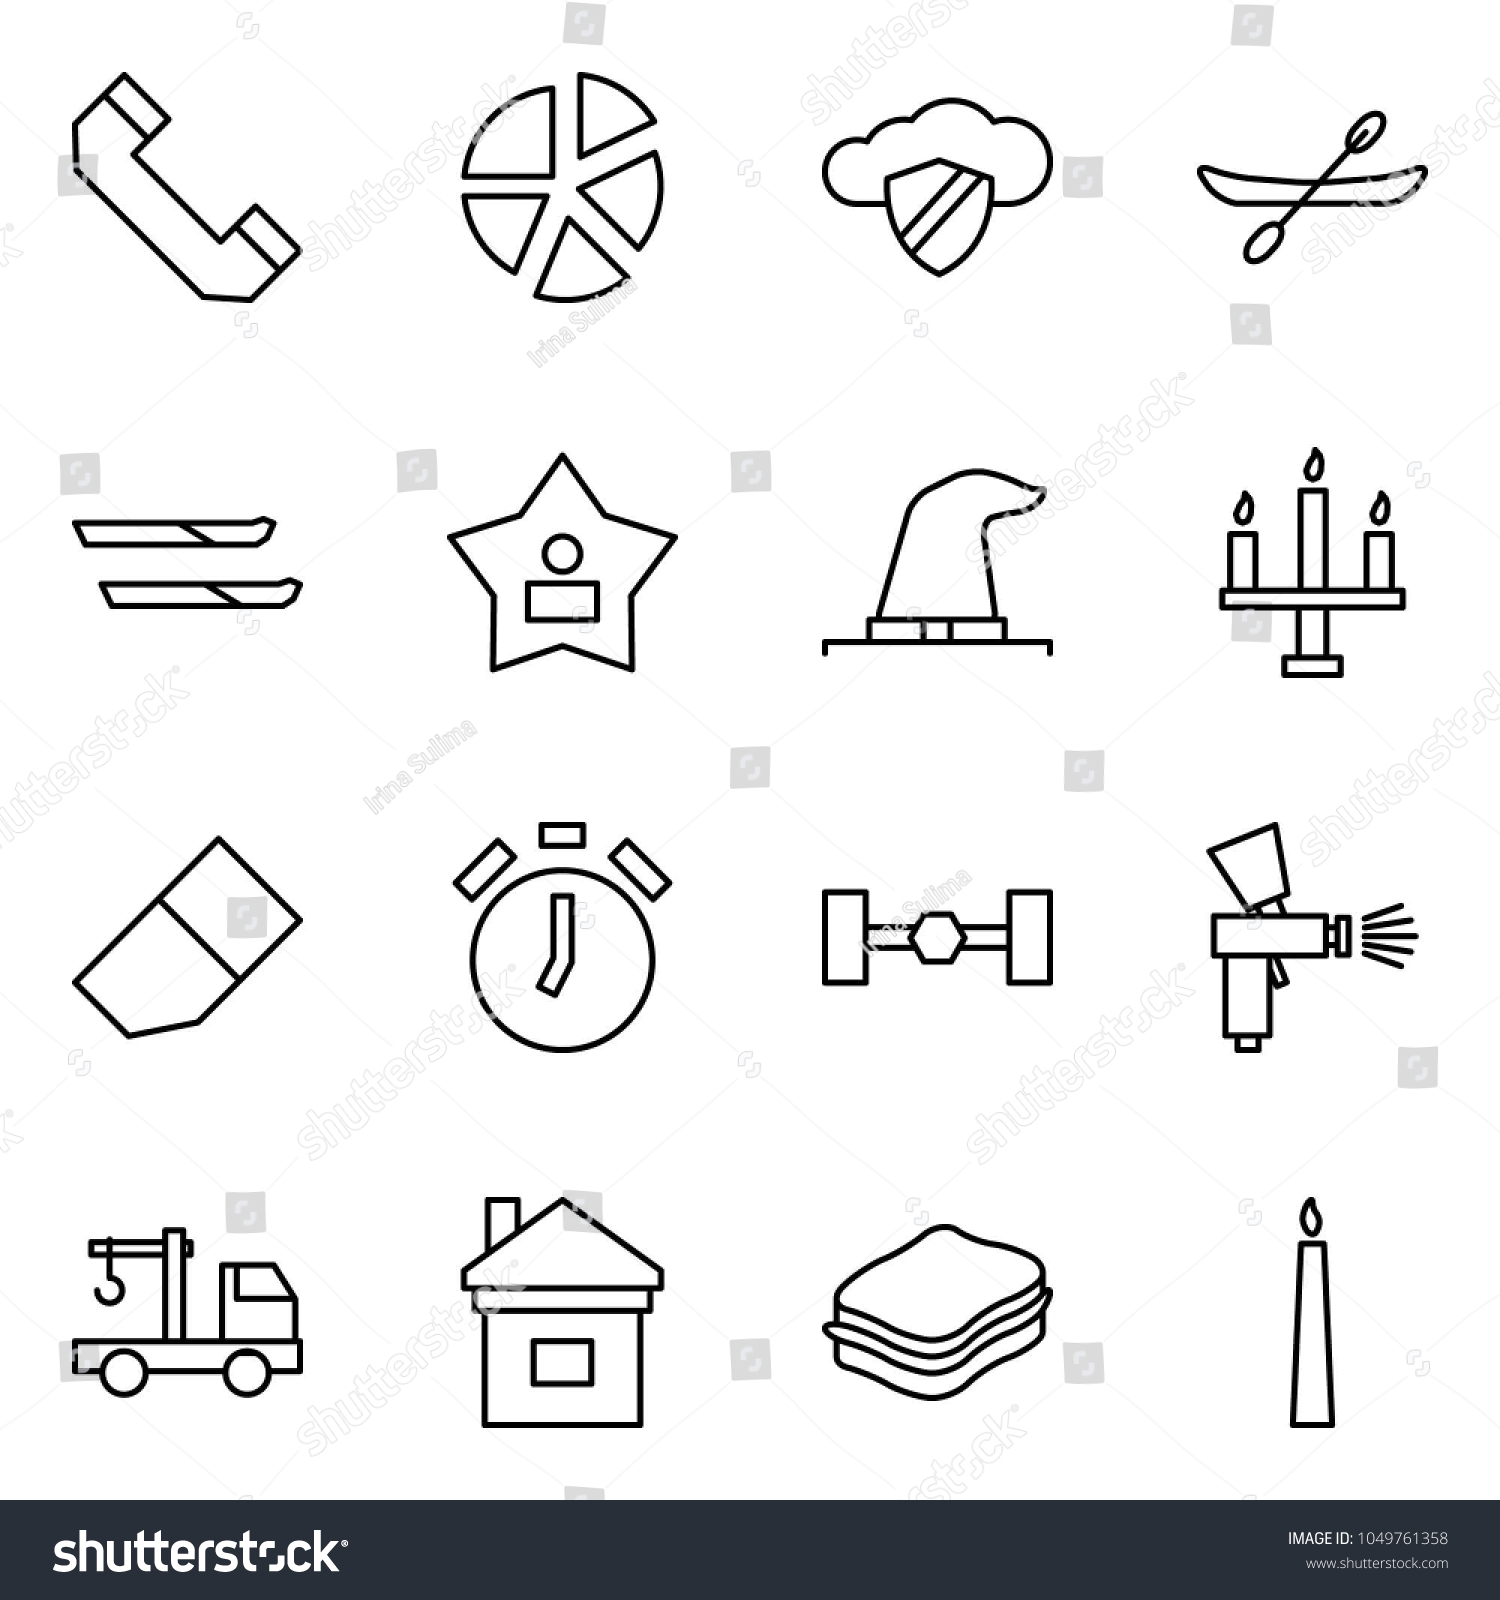 Flat Vector Icon Set Phone Horn Stock Royalty Free Diagram Chandelier Graph Cloud Safe Canoe